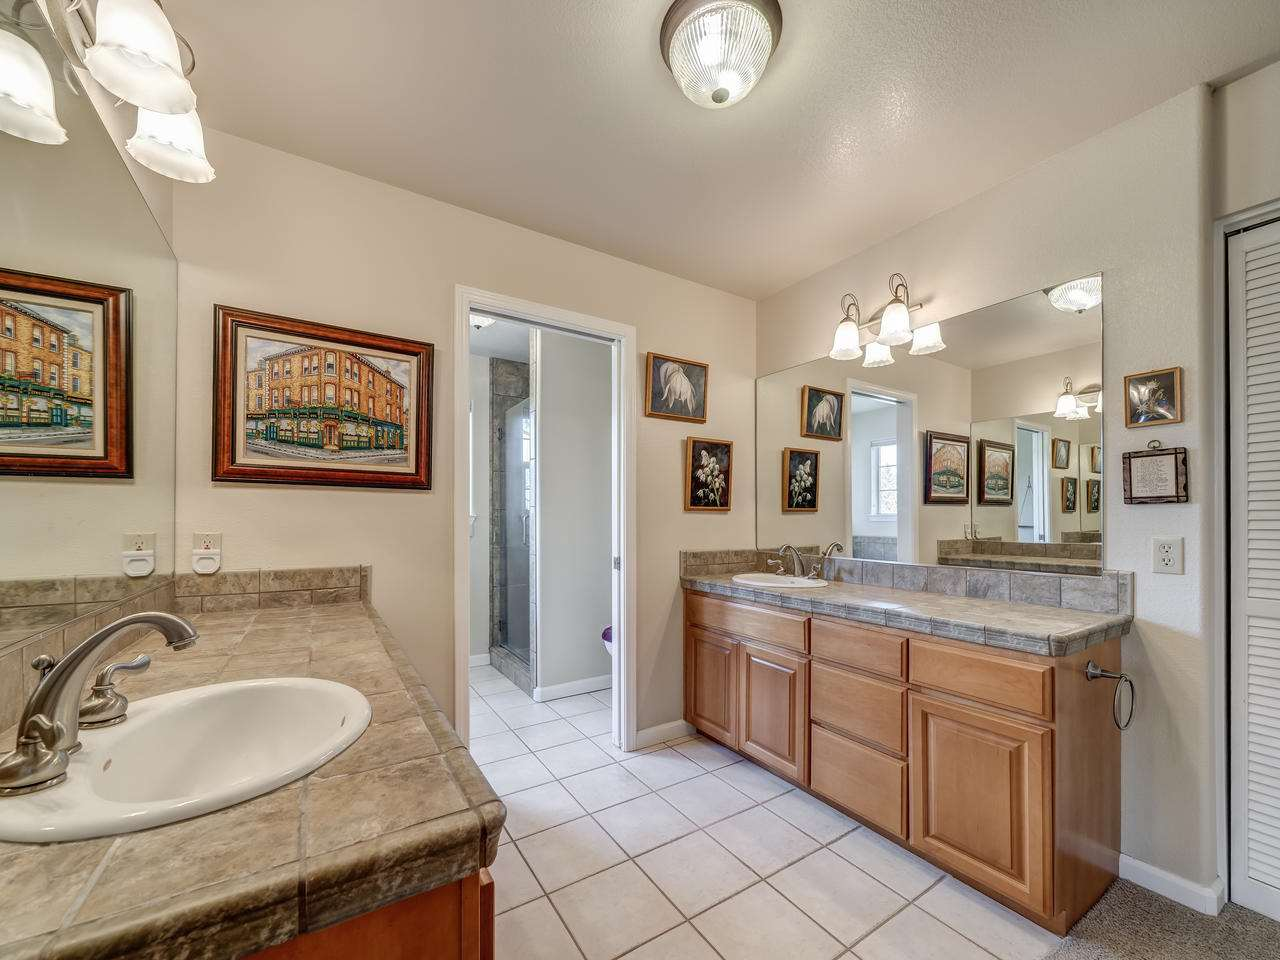 Additional photo for property listing at 55 Myrtlewood Circle Reno, Nevada 89511 Estados Unidos